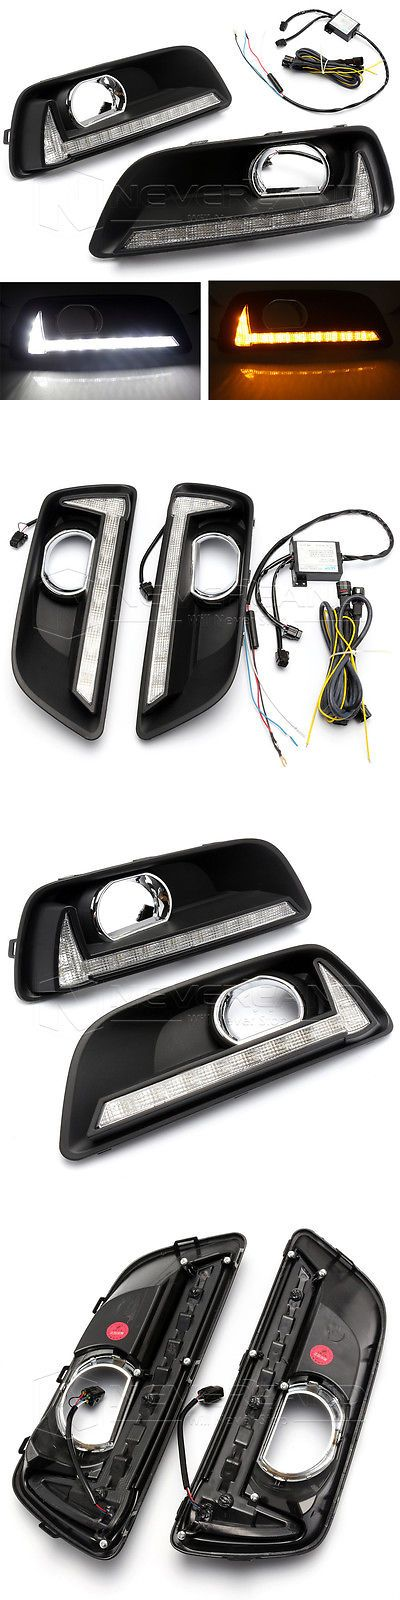 Motors Parts And Accessories: 2X Driving Led Daytime Running Light Drl Fog Lamp For Chevrolet Malibu 2011-2015 BUY IT NOW ONLY: $119.99